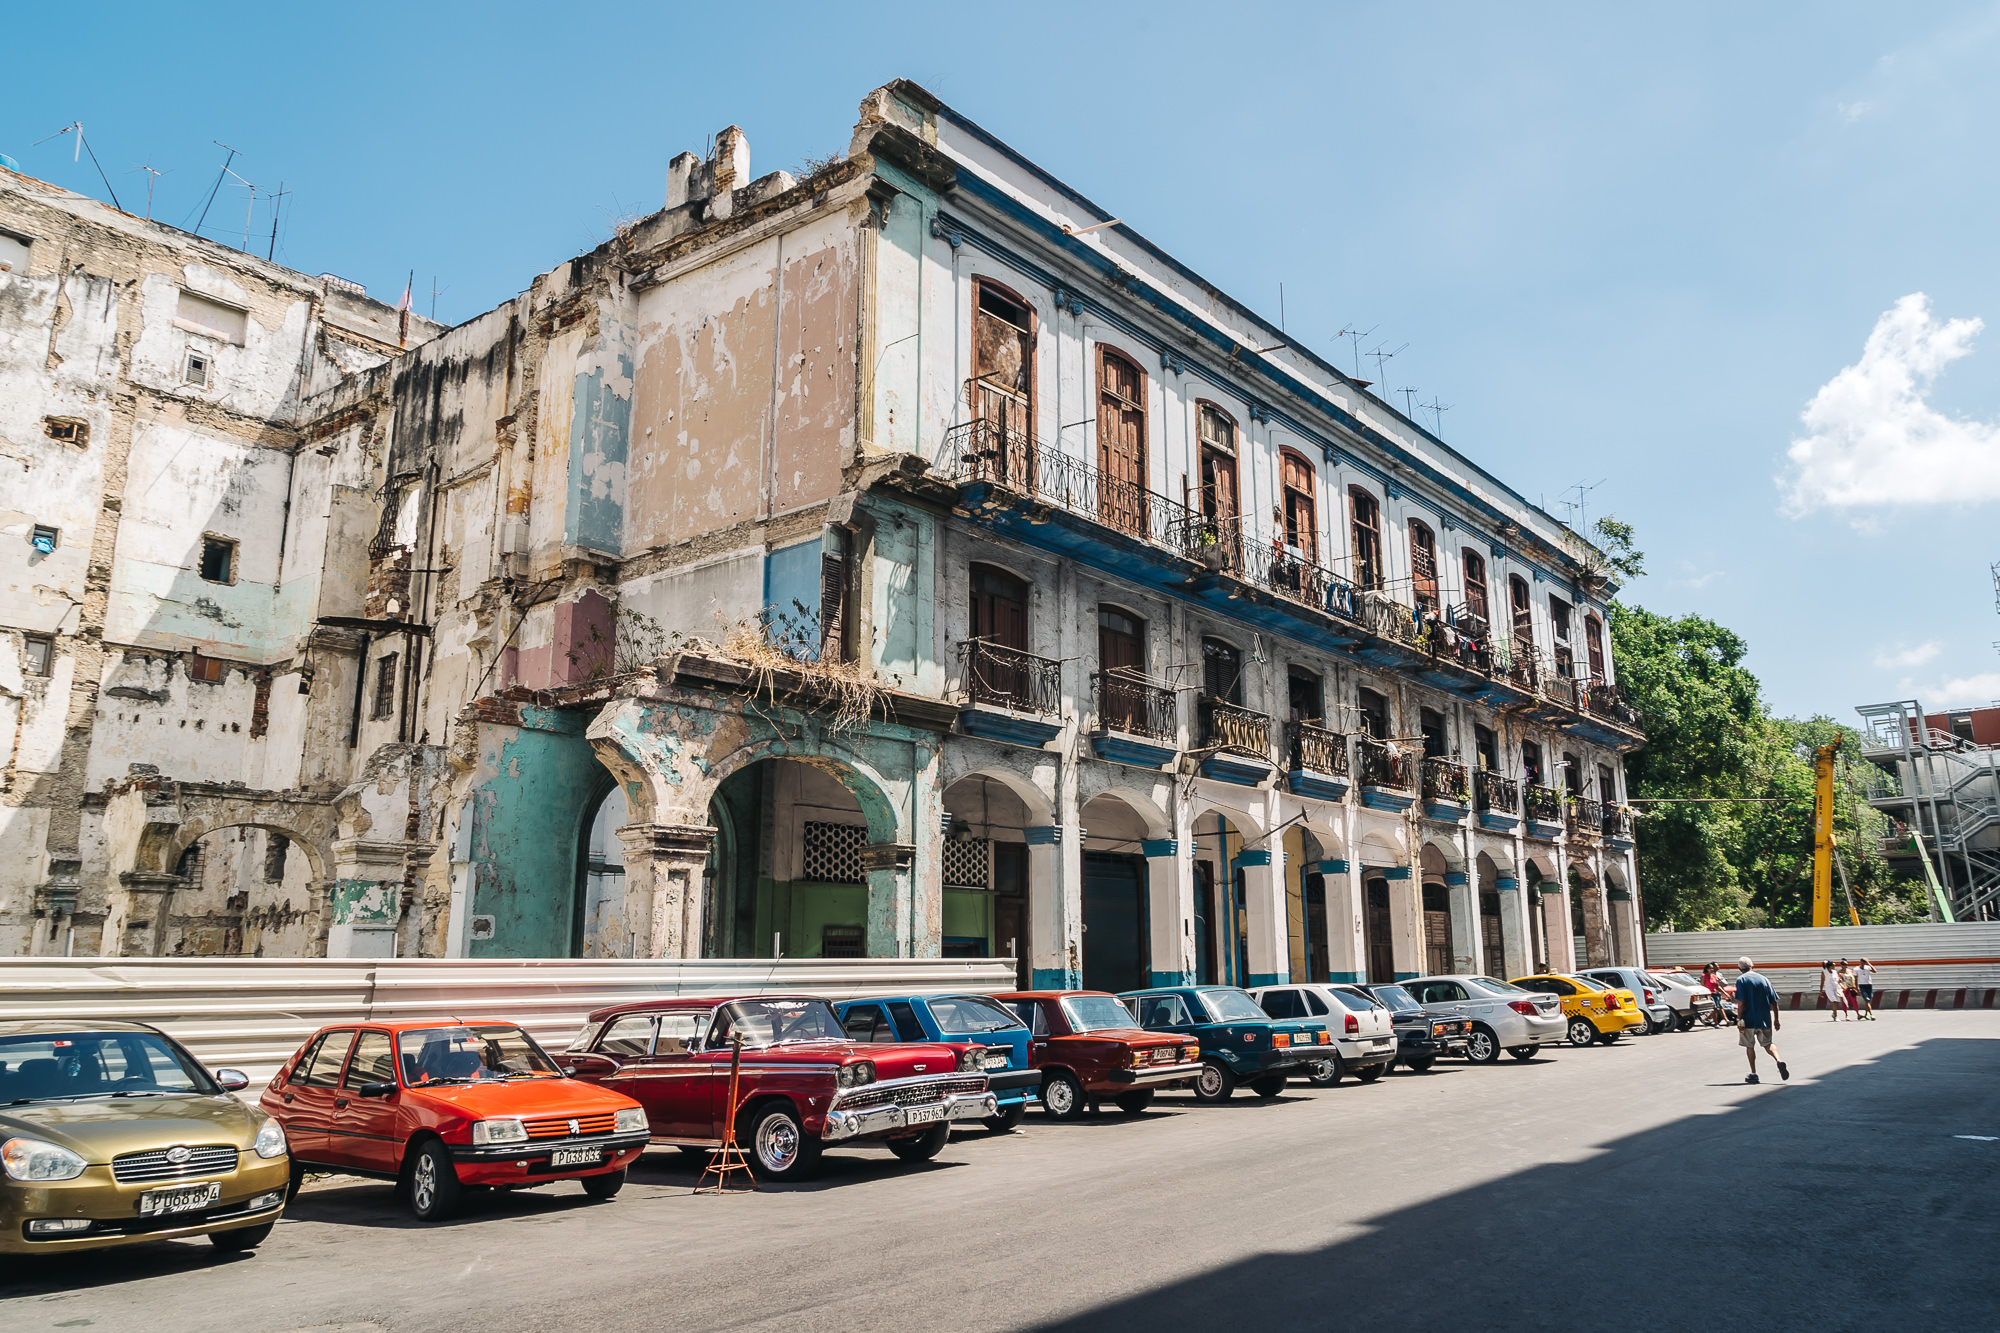 The buildings within the tourist locations are well kept, but once you step outside of the tourist zone, you will see many run-down buildings like this